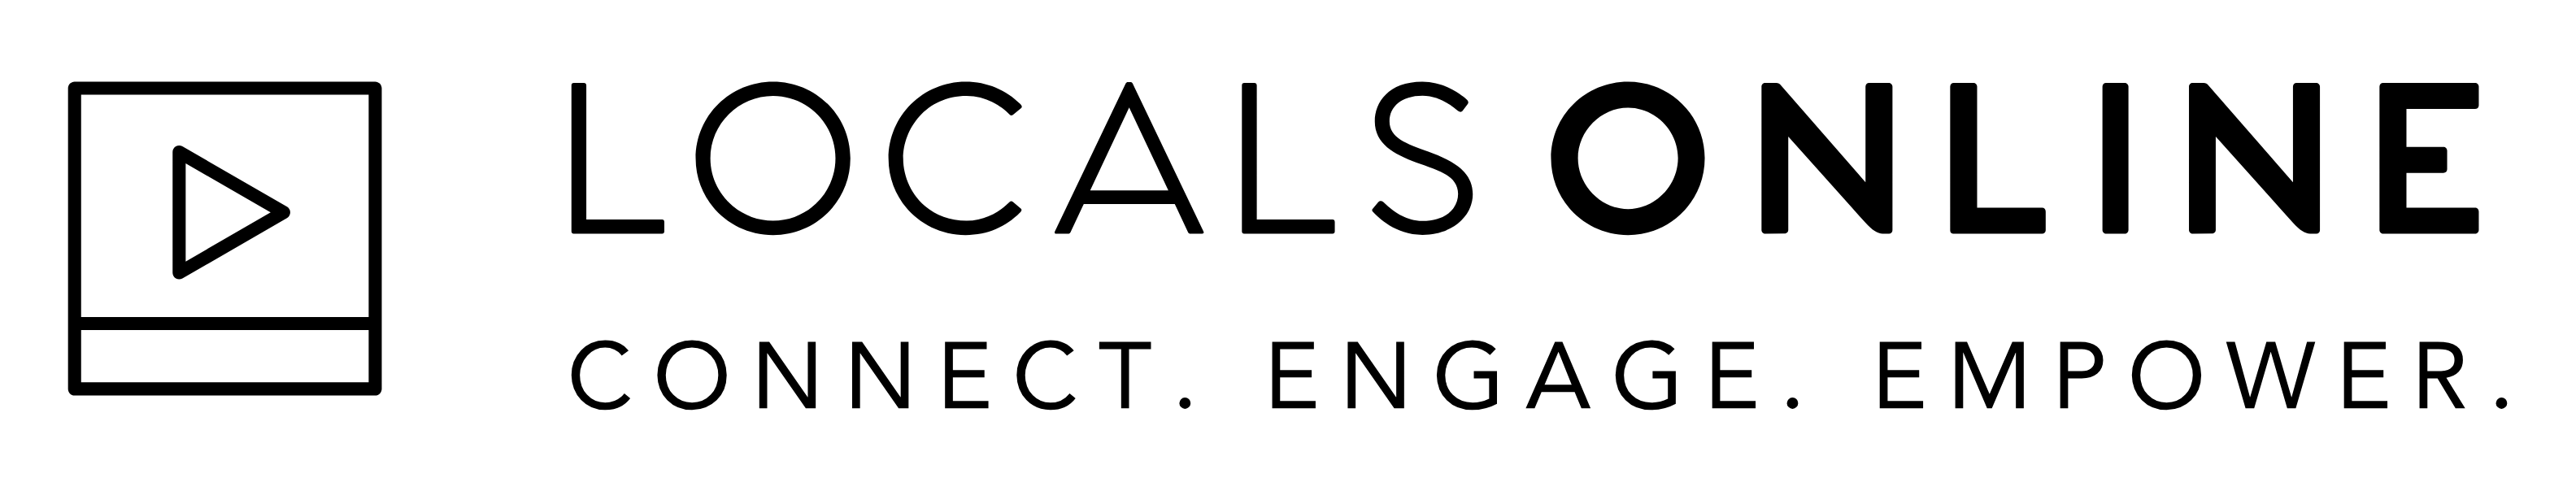 Black-logo-no-background